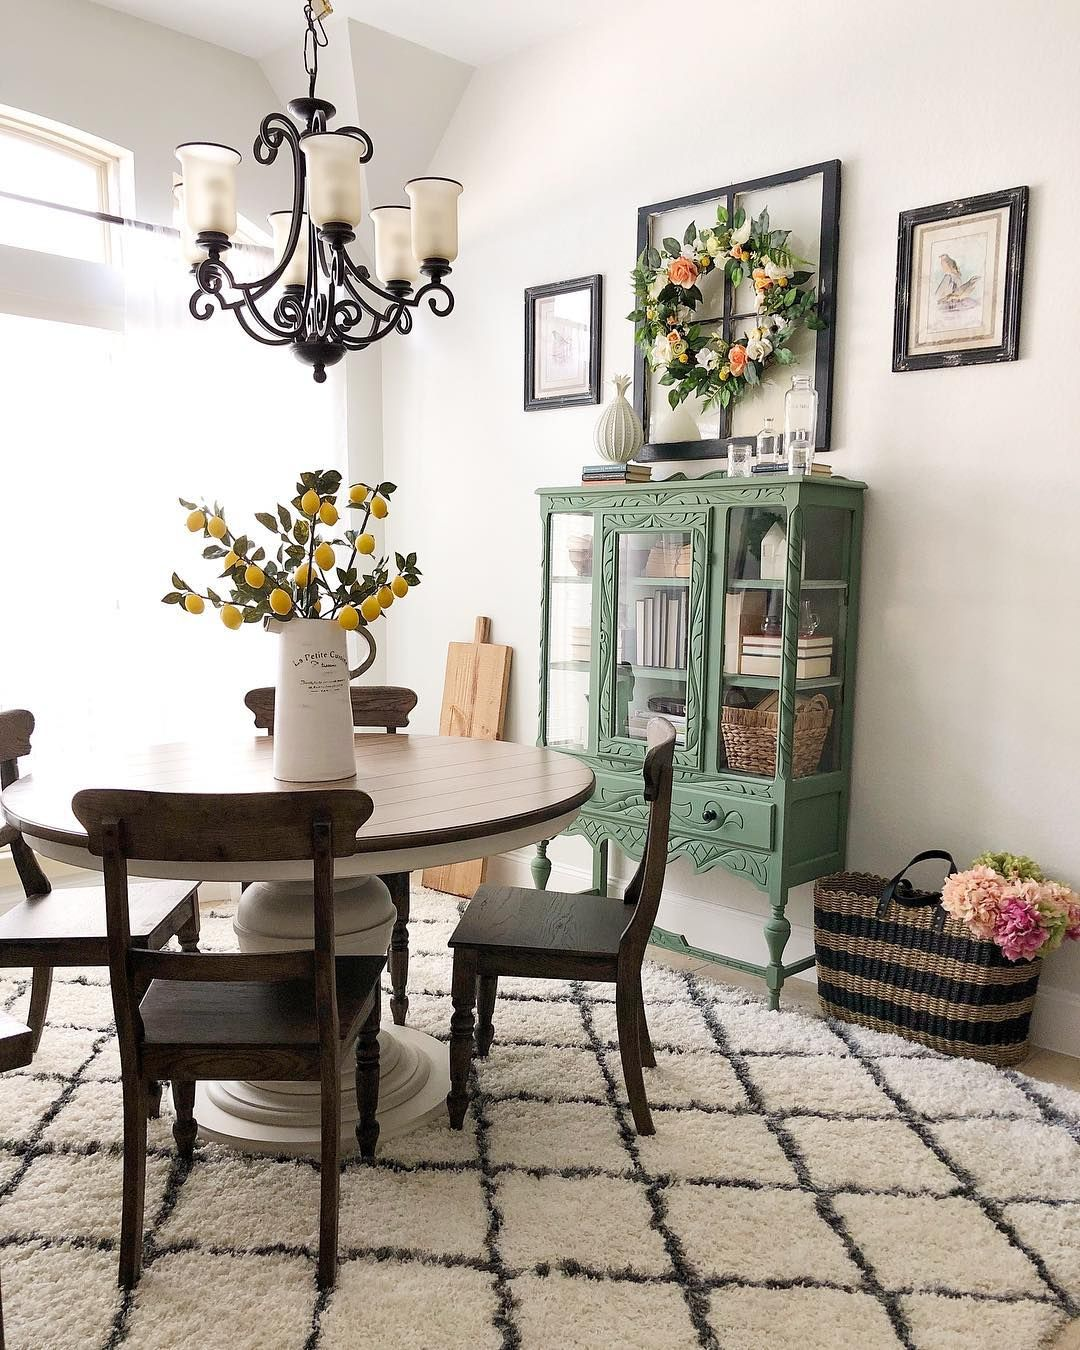 Magnolia Homes Interiors: Happy Friday Y'all! If You Caught My Stories Or Highlights